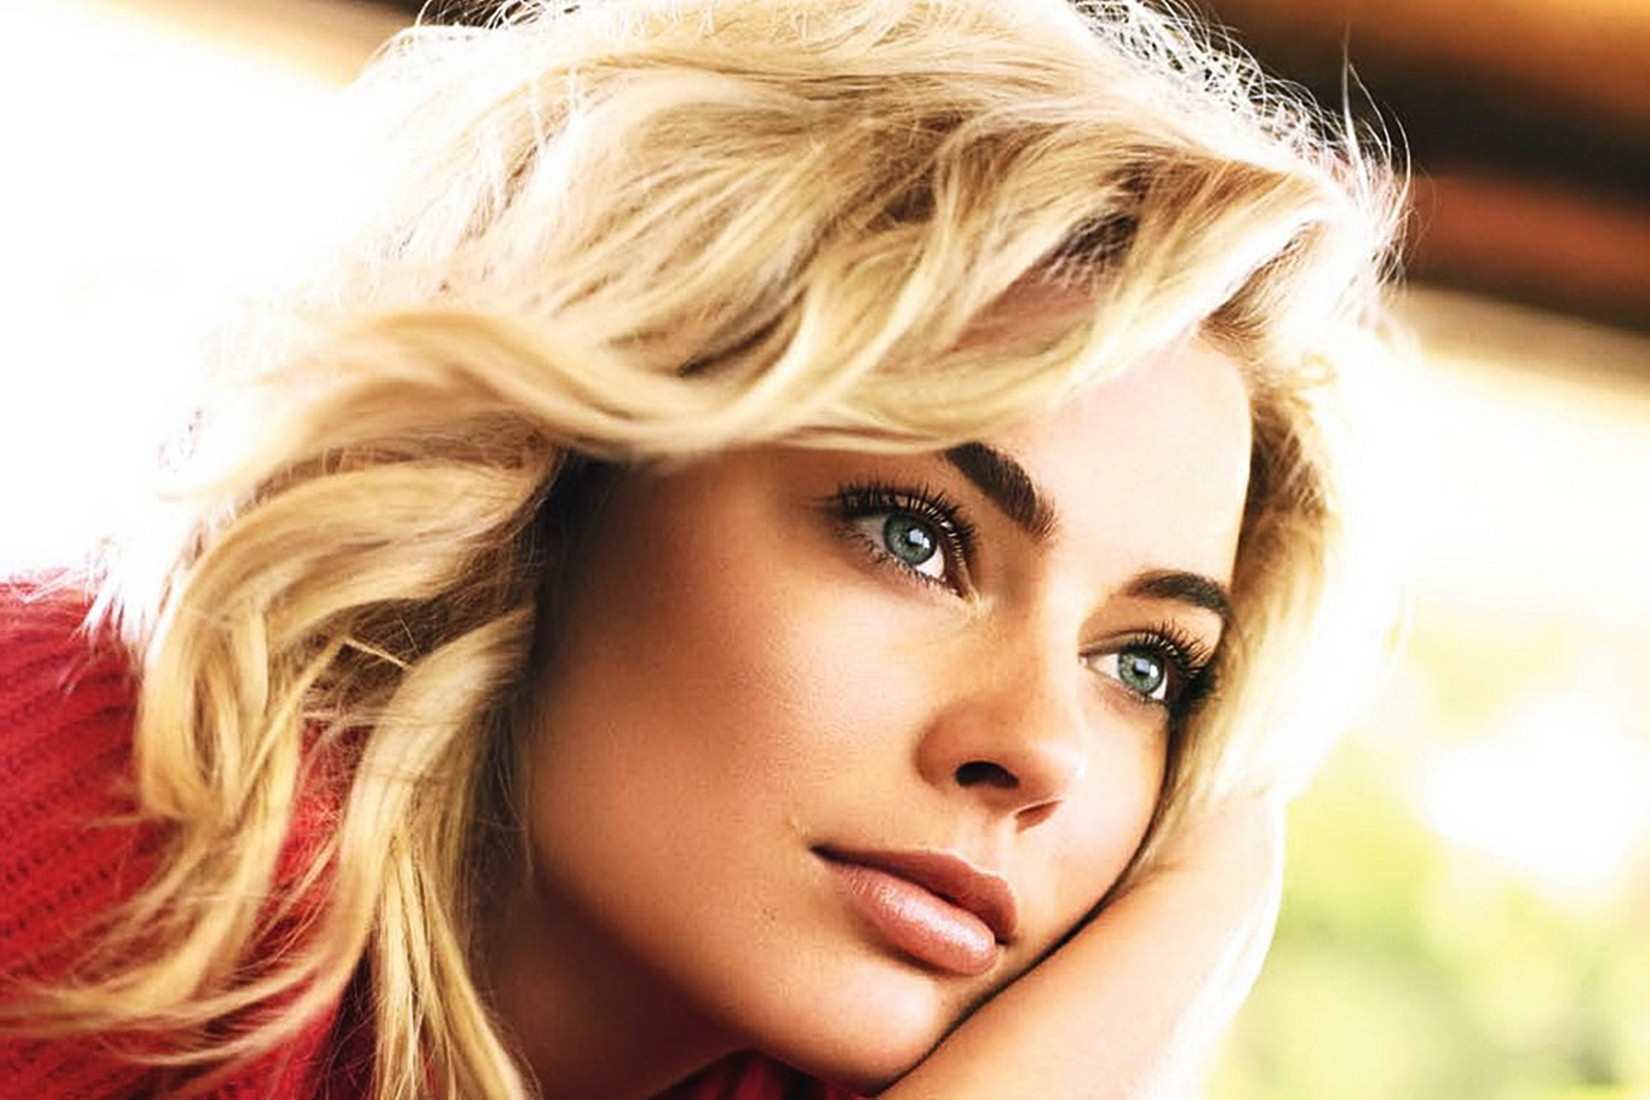 Margot Robbie Wallpapers HD Backgrounds Images Pics Photos 1650x1100